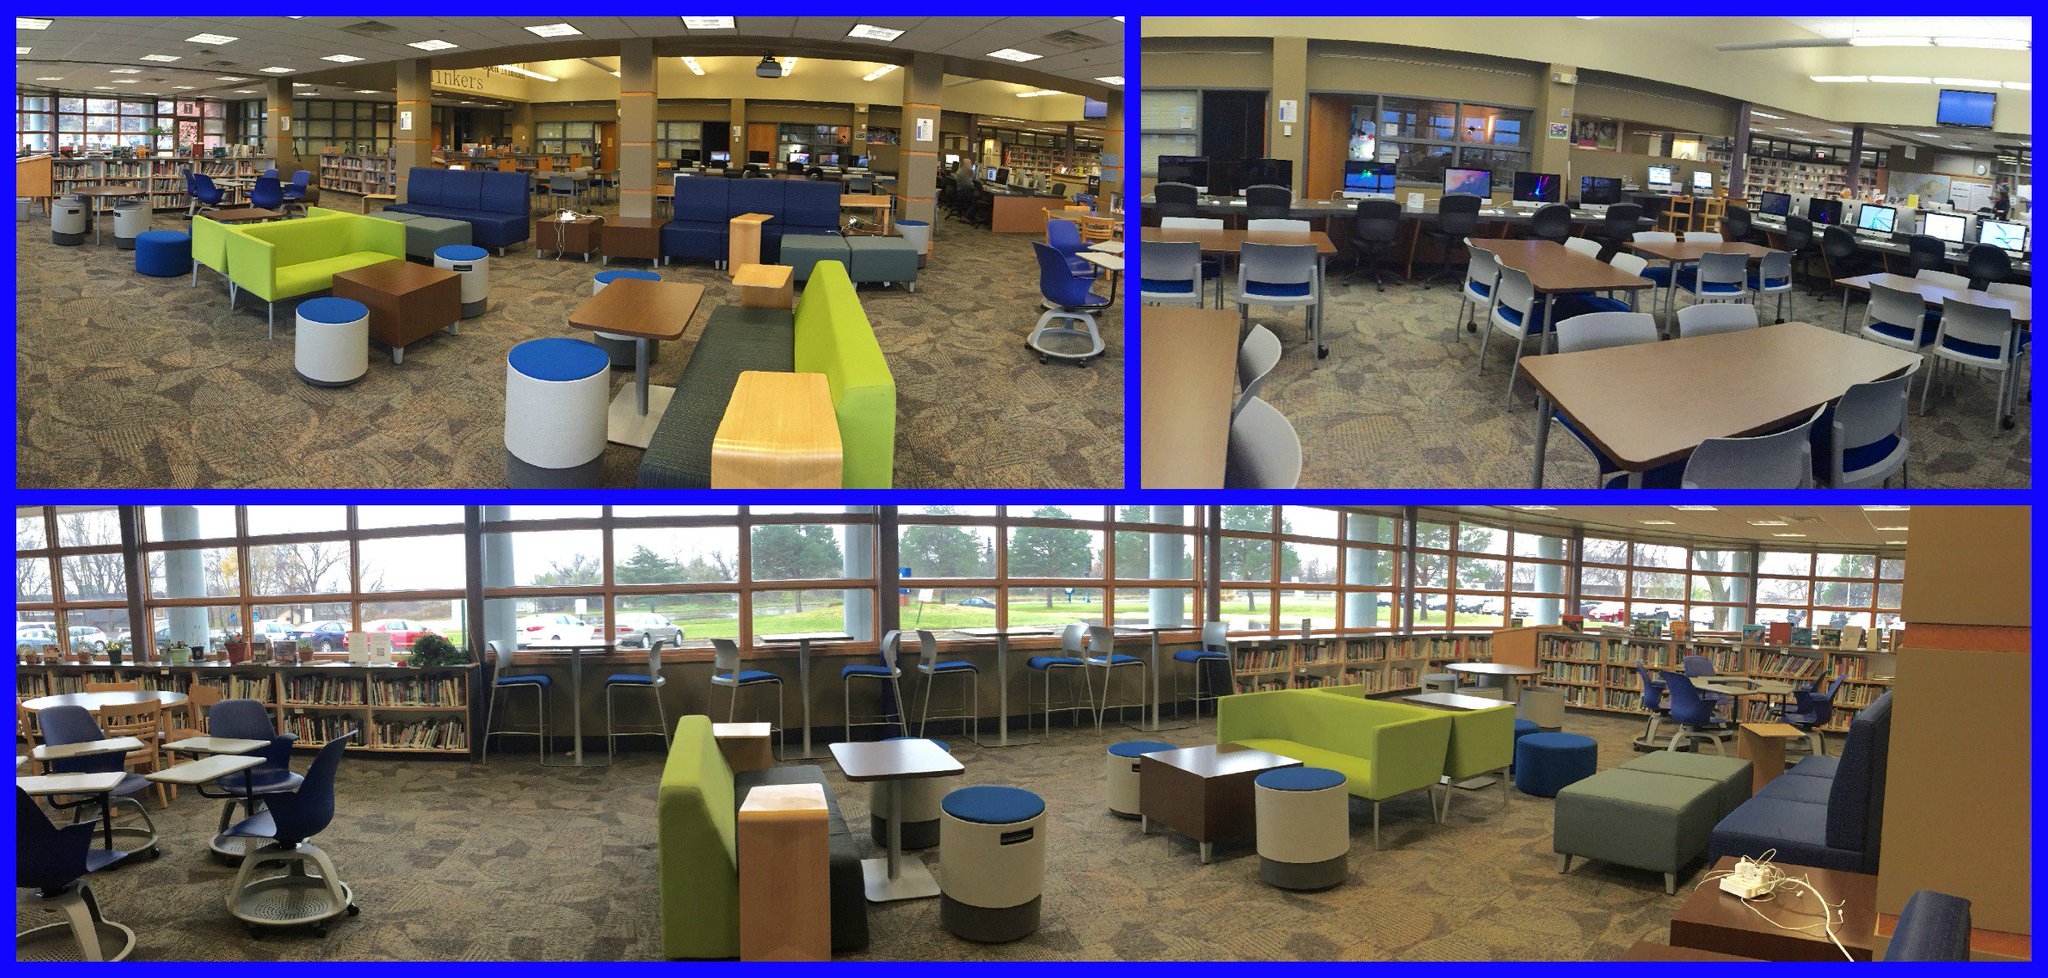 Here is our flexible space at North Junior High. (Come see it in person on 4-8!) #mnitem https://t.co/RxoAASuStU